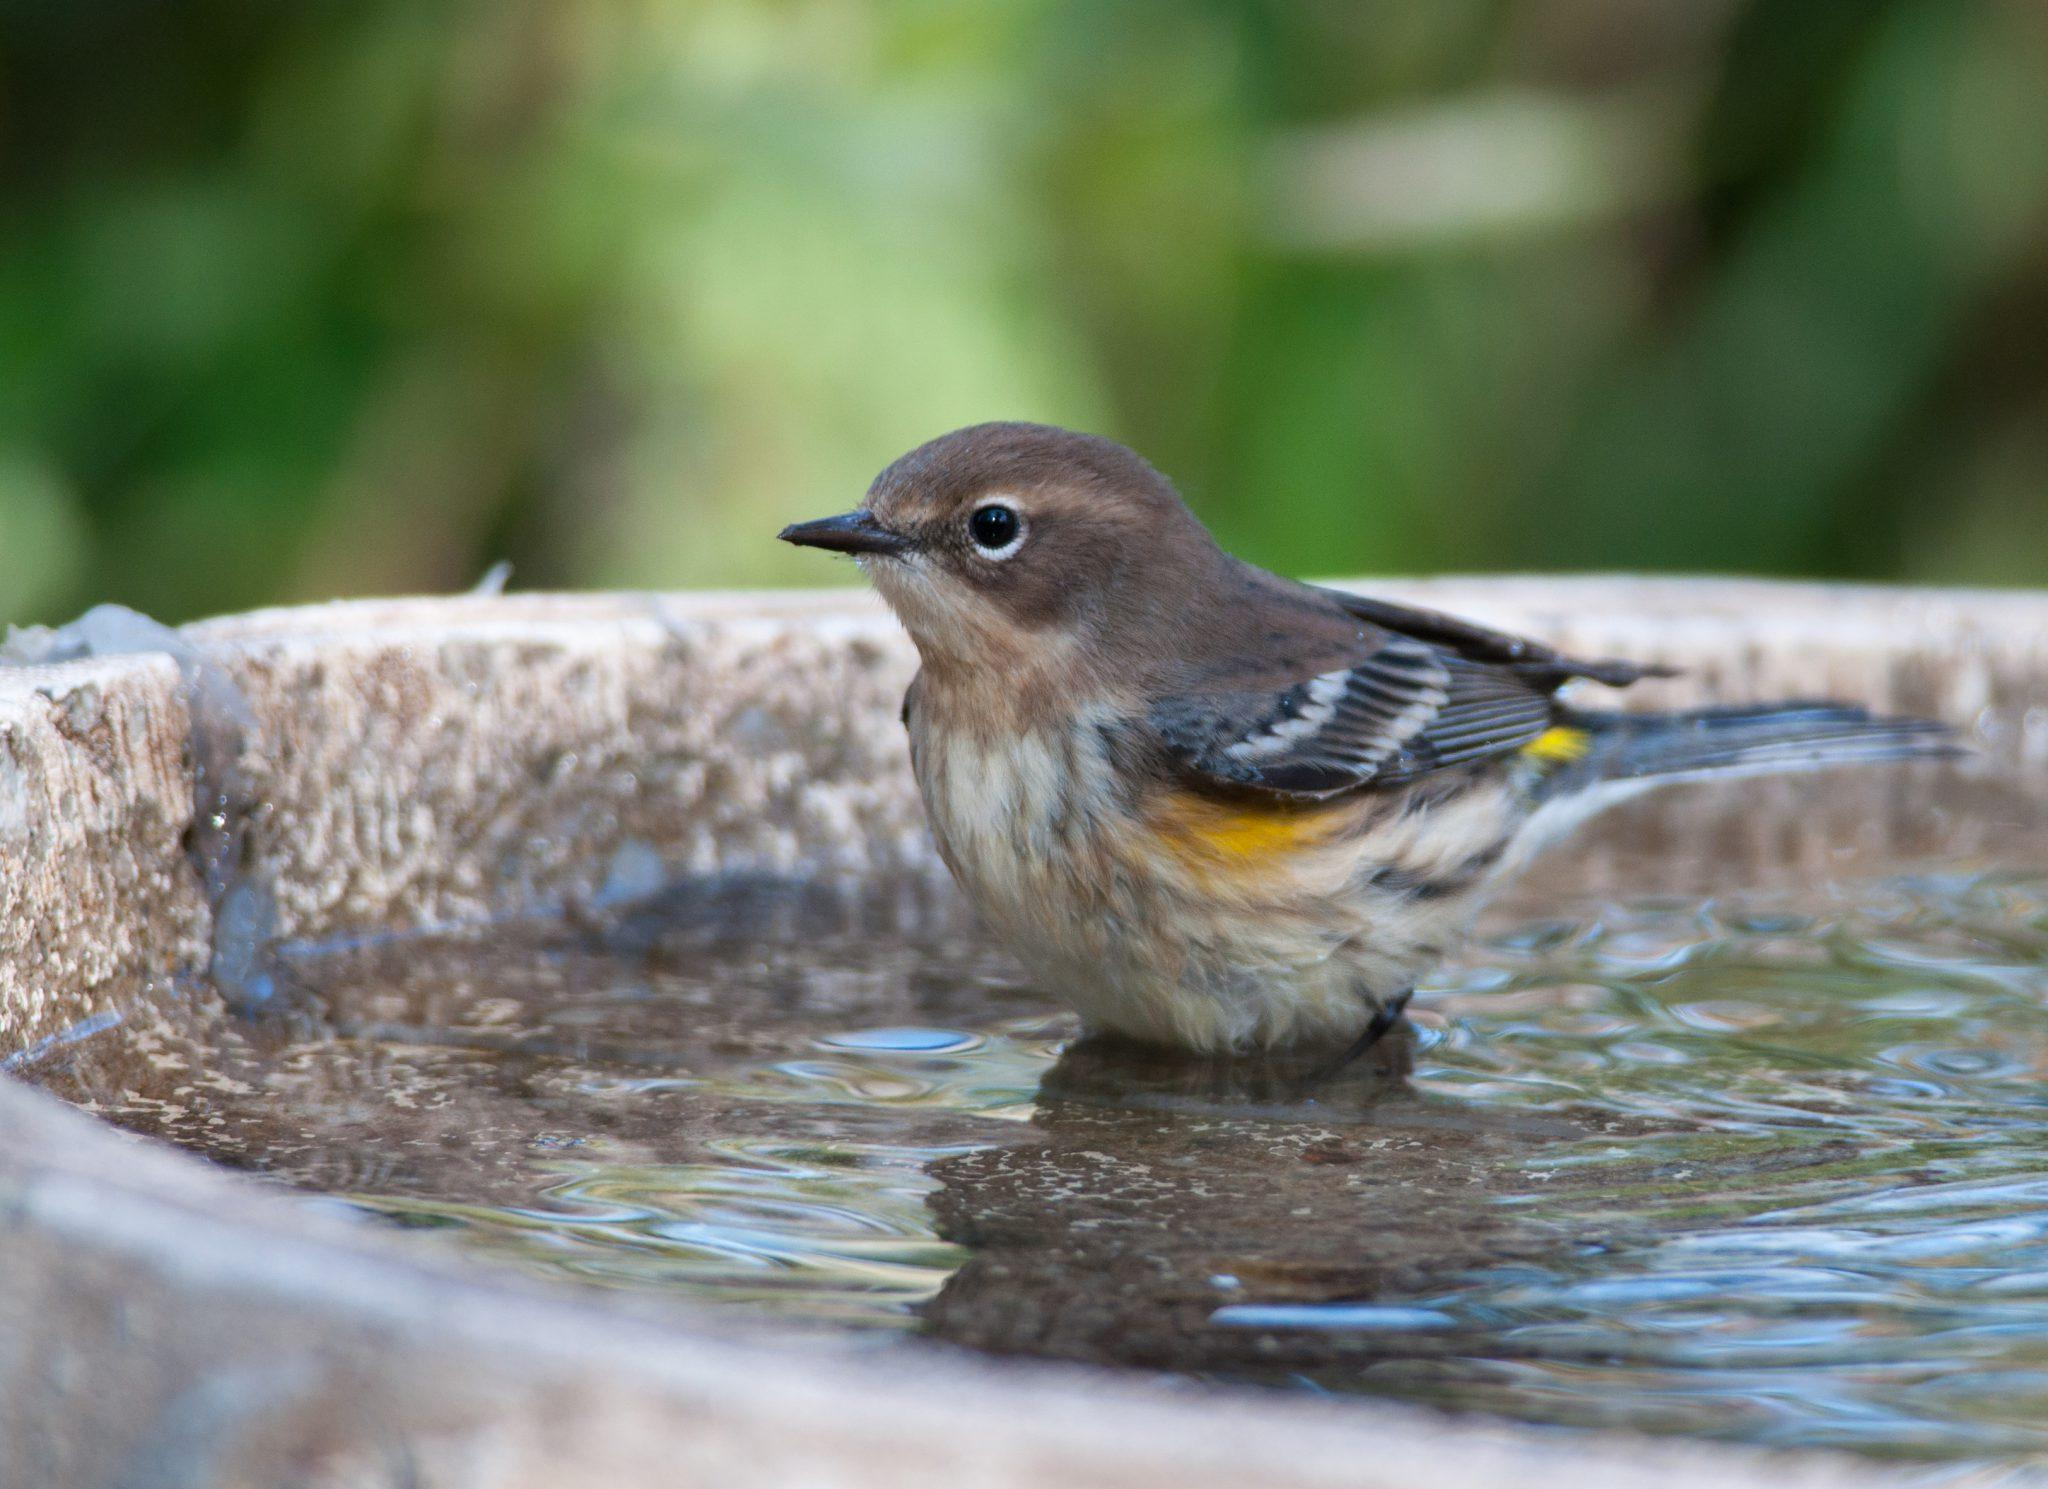 garden bird sitting in a bird bath